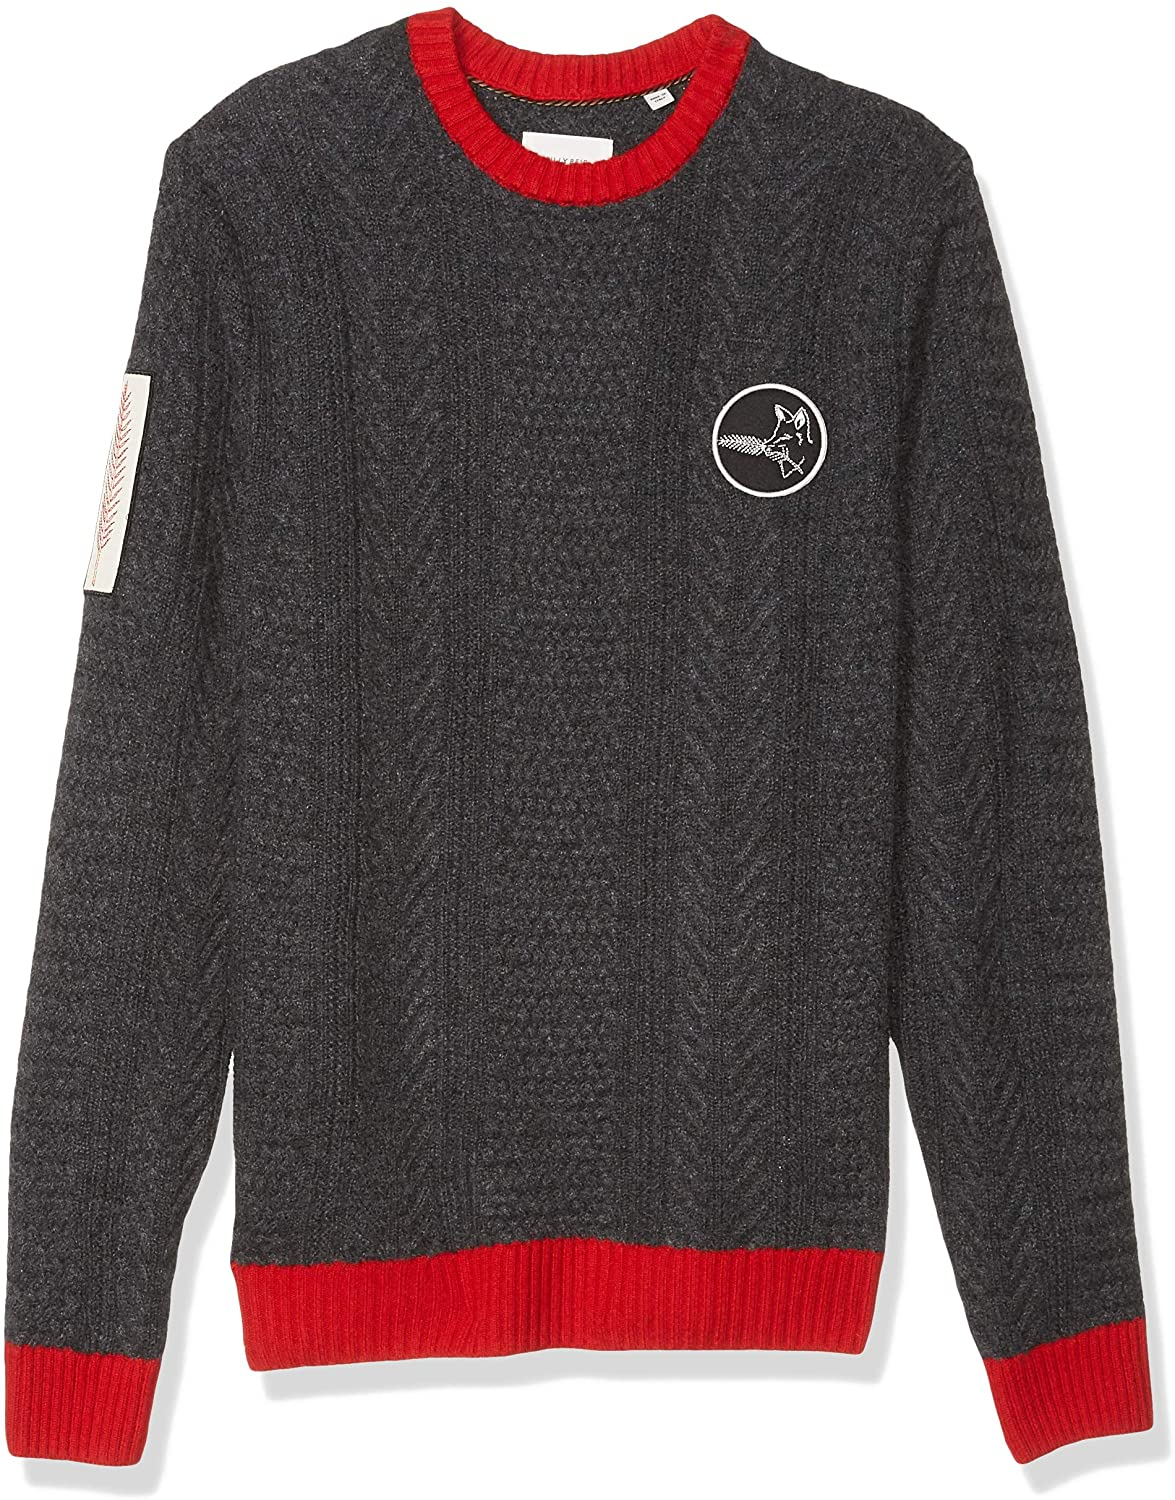 billy reid cashmere sweater - Billy Reid Men's Cashmere Cable Knit Crewneck Sweater with Patches